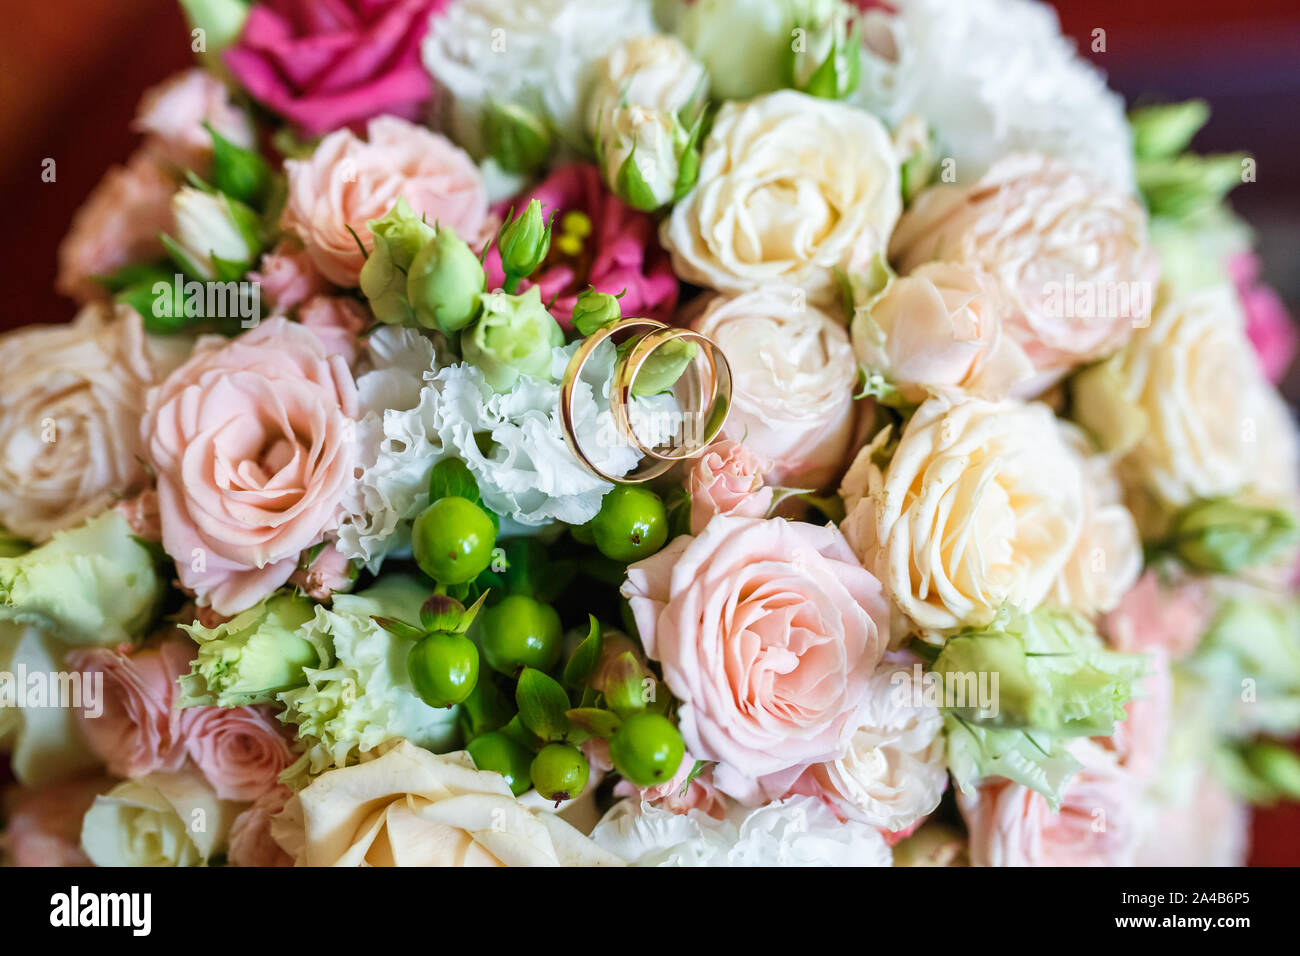 Bright Wedding Bouquet Of Summer White Pink Roses With Wedding Rings Stock Photo Alamy